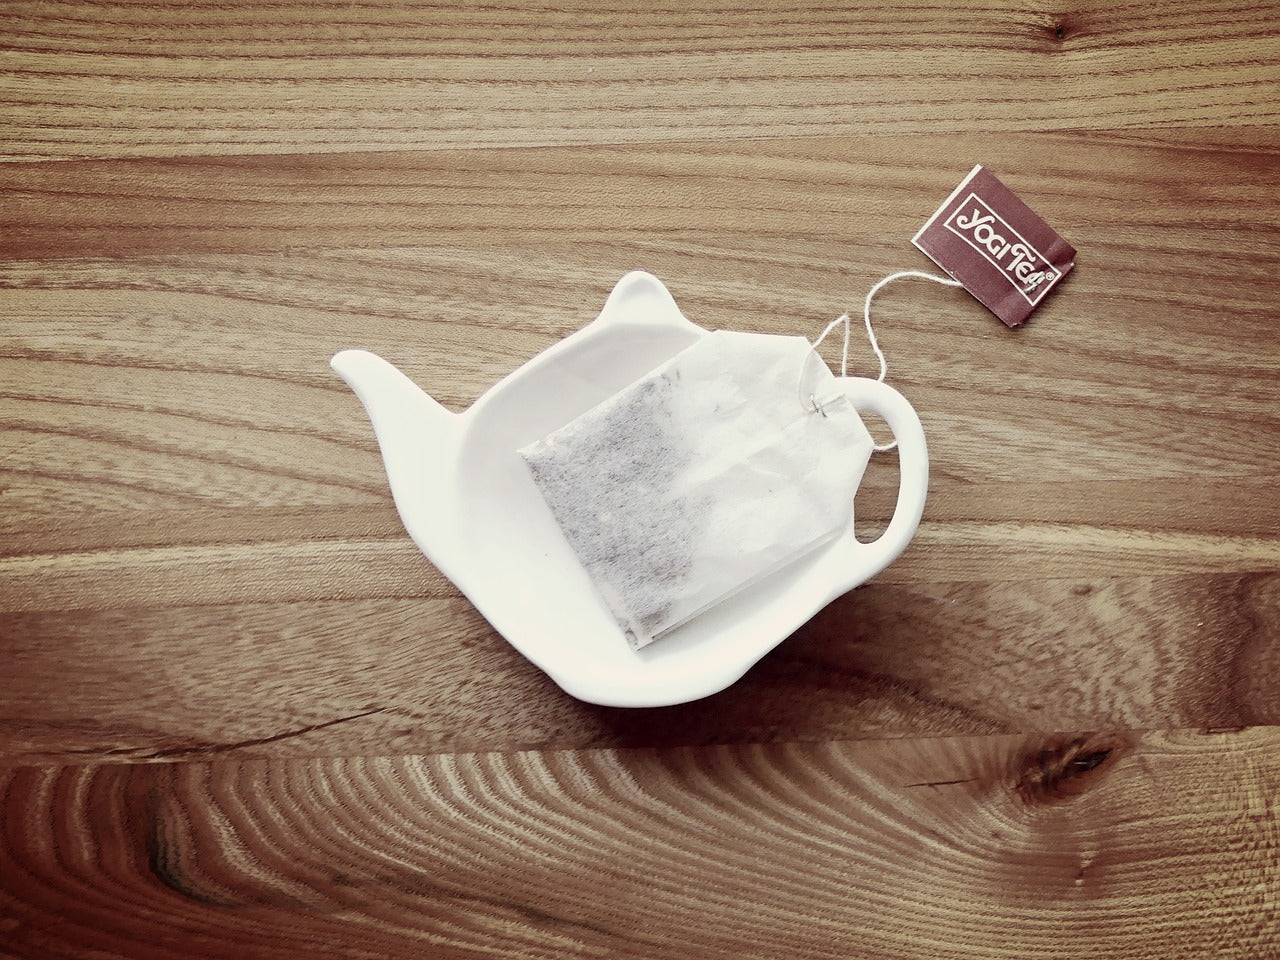 Microplastics in Teabags? Your Guide to Sustainable Tea Brewing